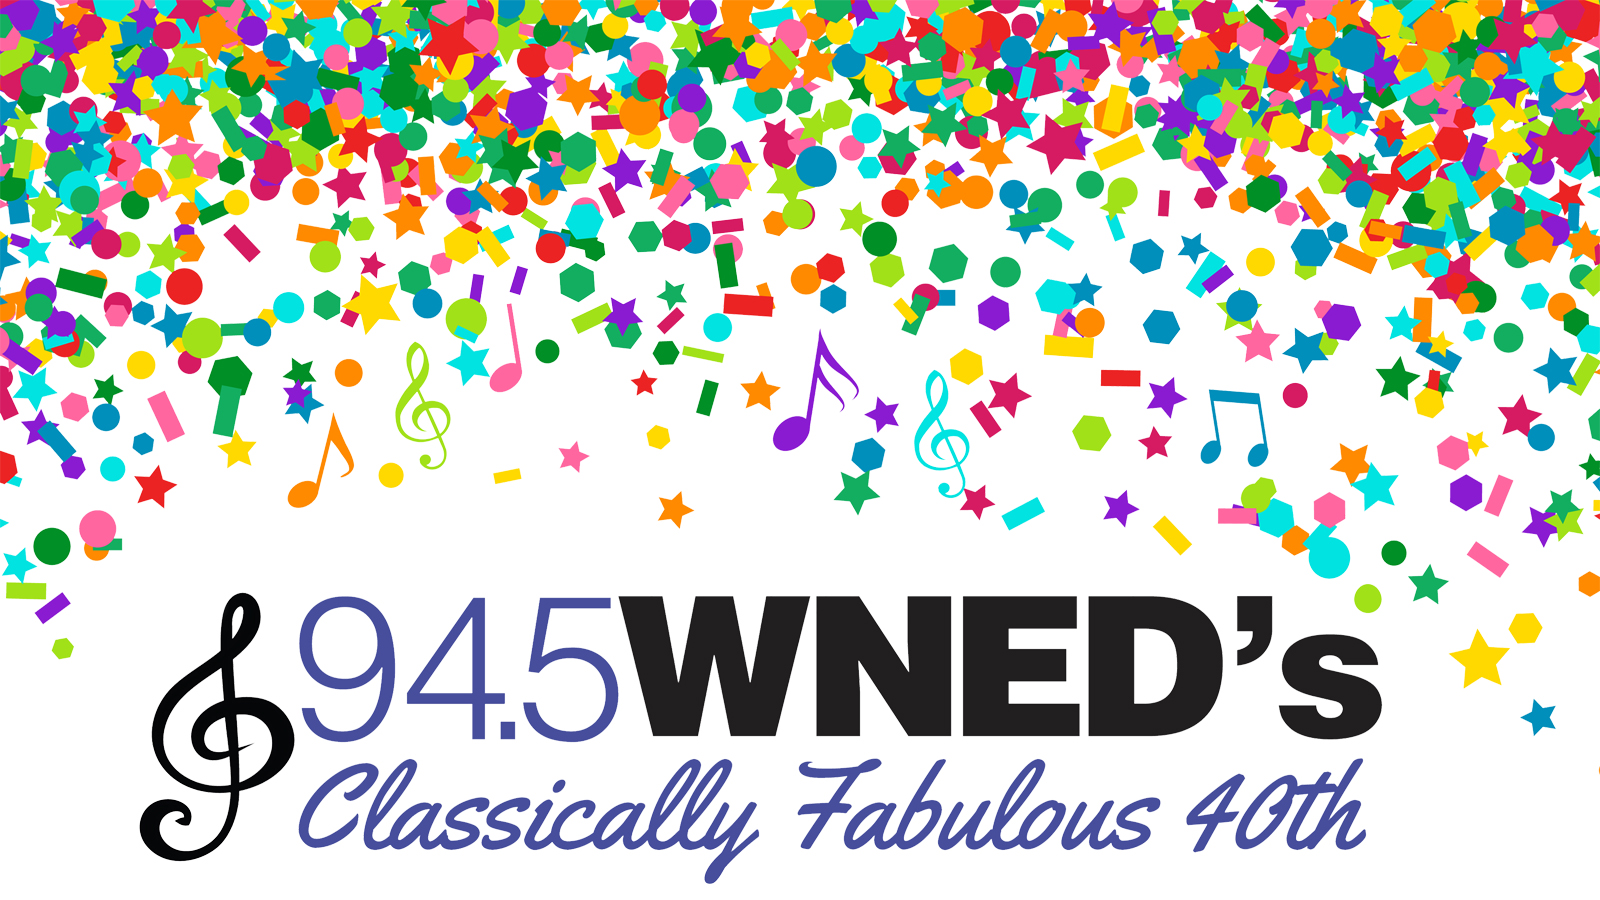 WNED's Classically Fabulous 40th |Saturday, November 4